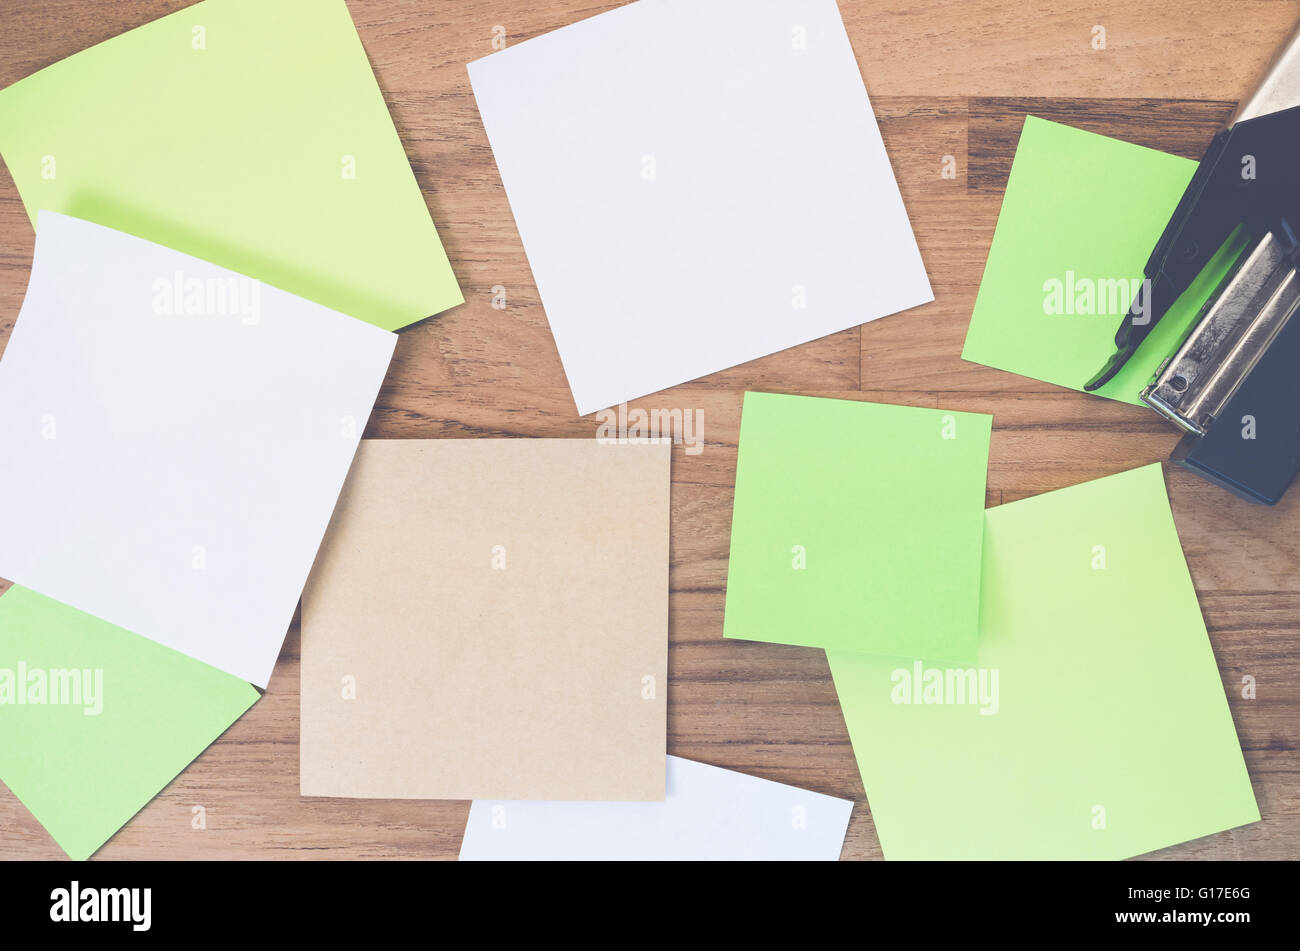 blank memos on a wood tabletop - Stock Image